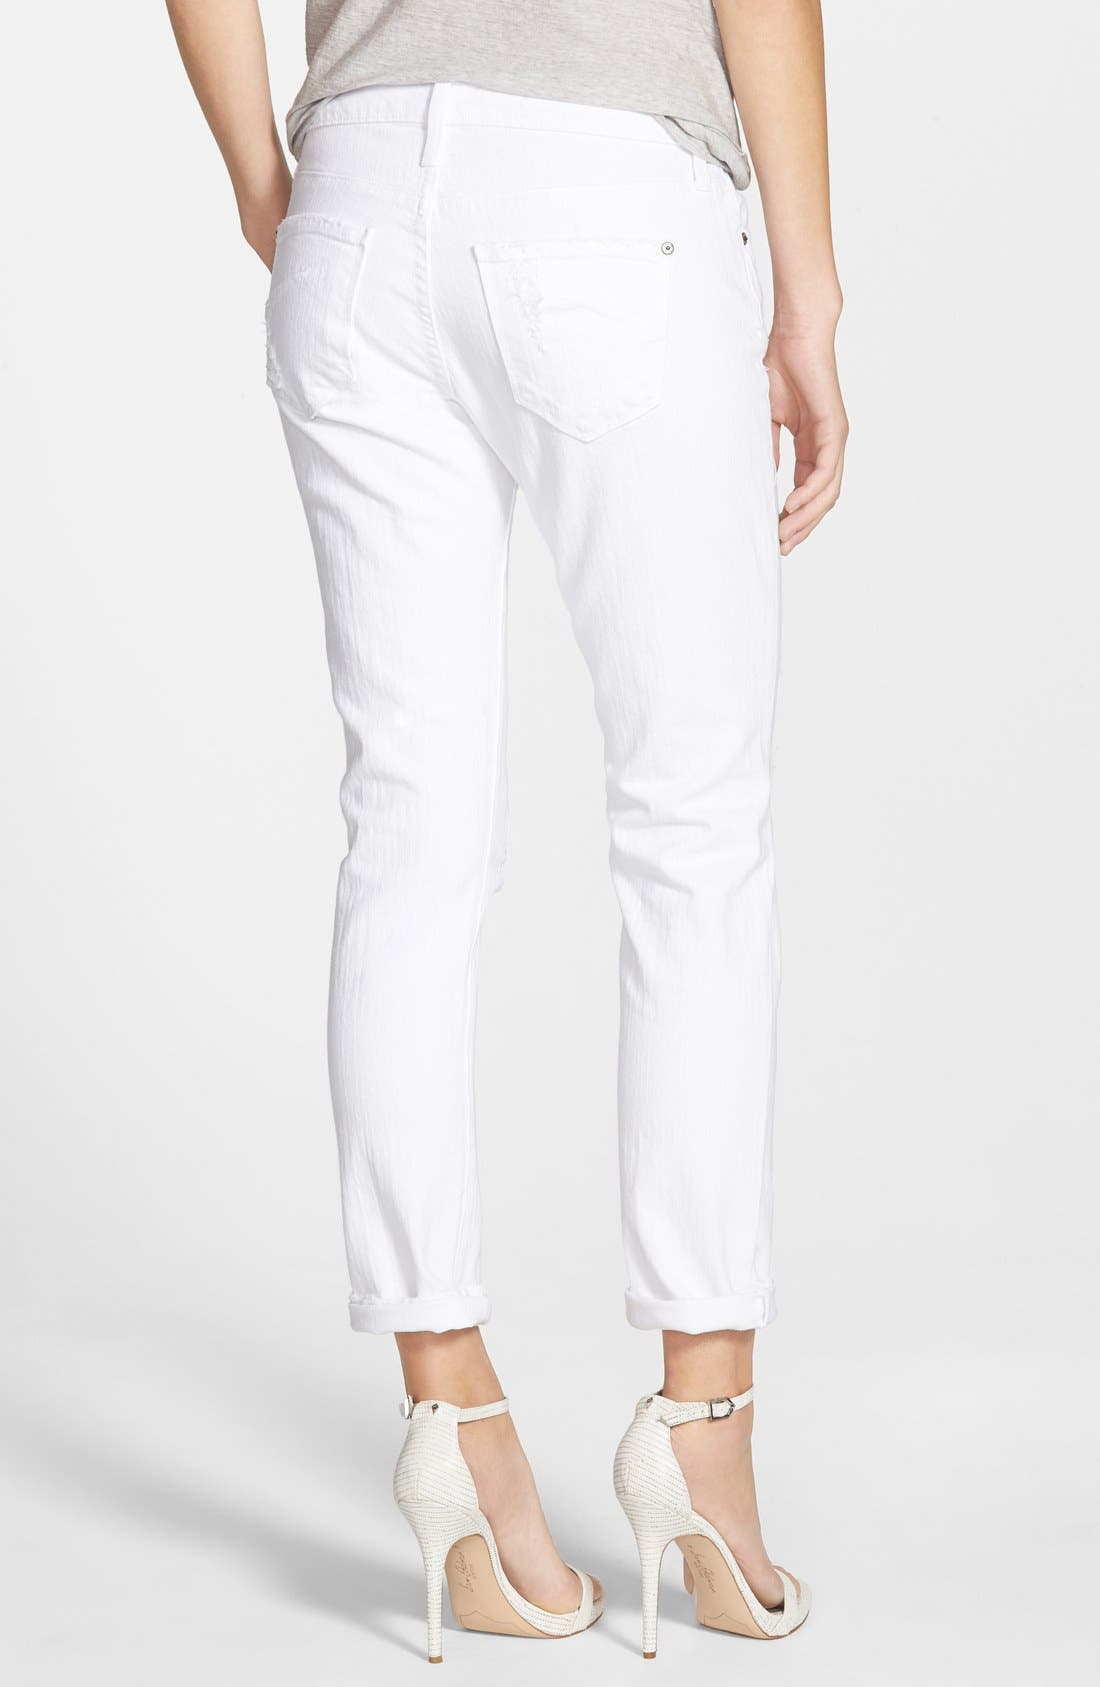 Alternate Image 2  - James Jeans 'Neo Beau' Stretch Boyfriend Jeans (Destroyed White)